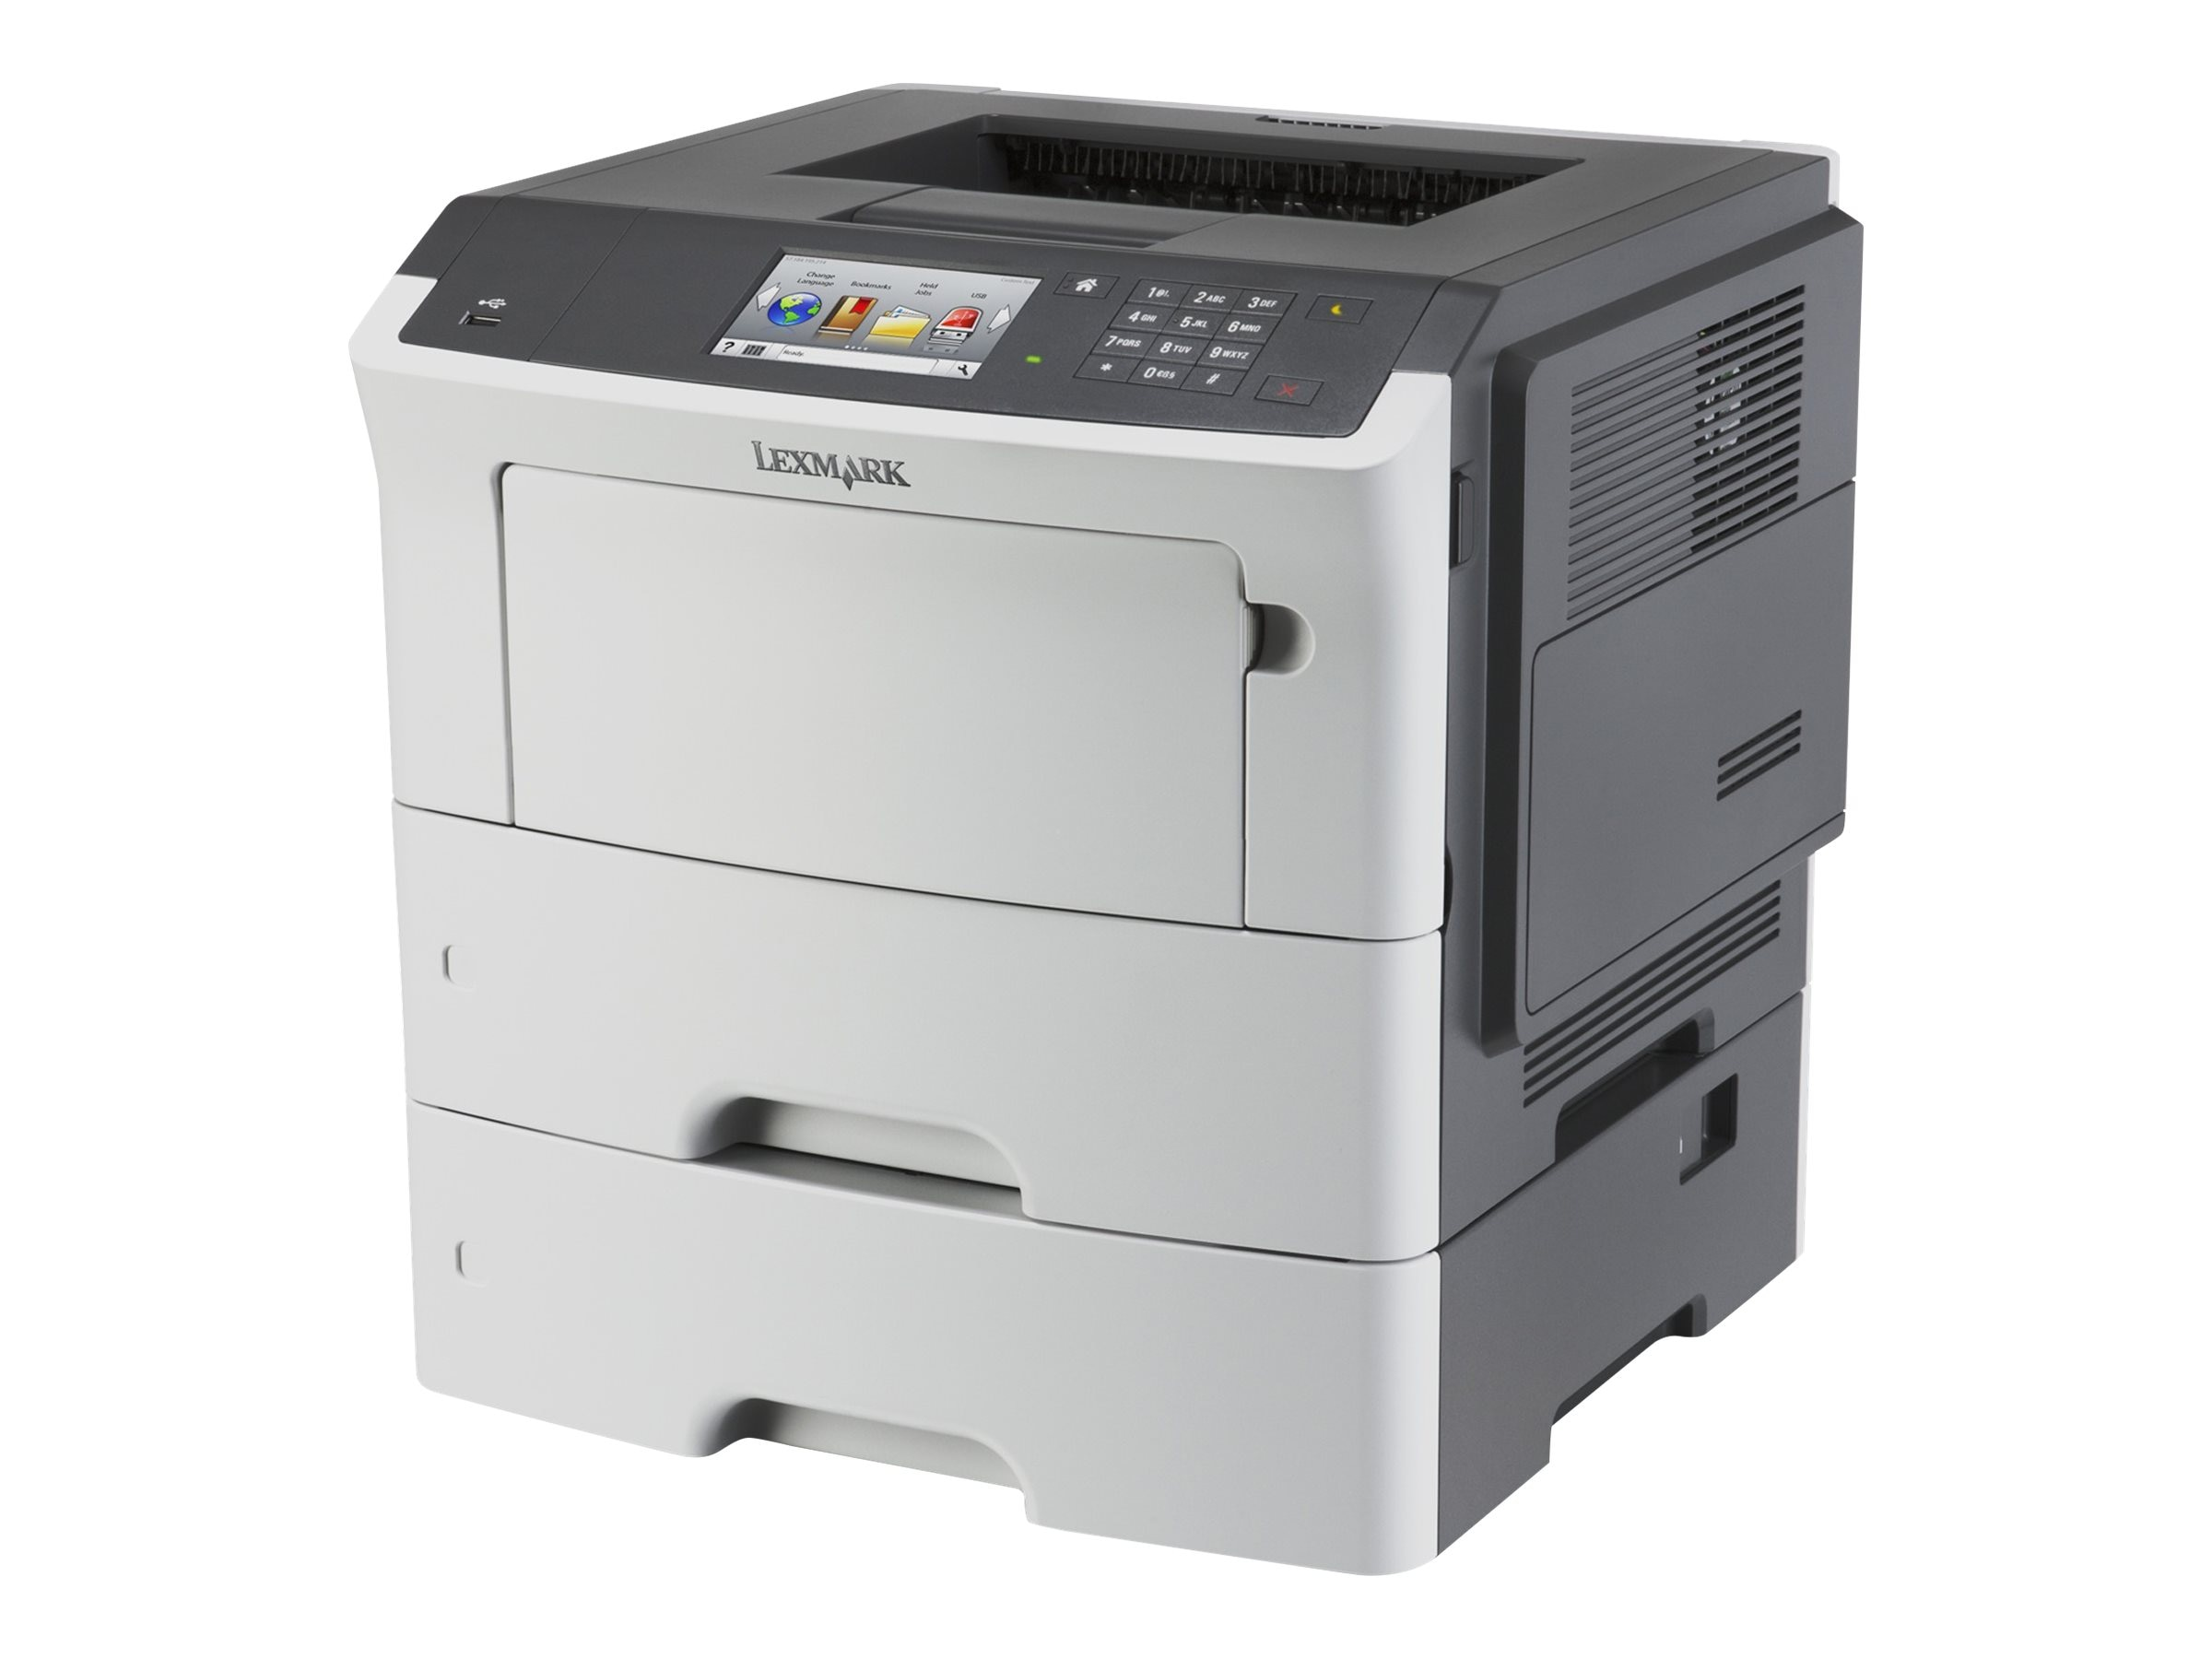 Lexmark MS610dte Monochrome Laser Printer (TAA Compliant), 35ST550